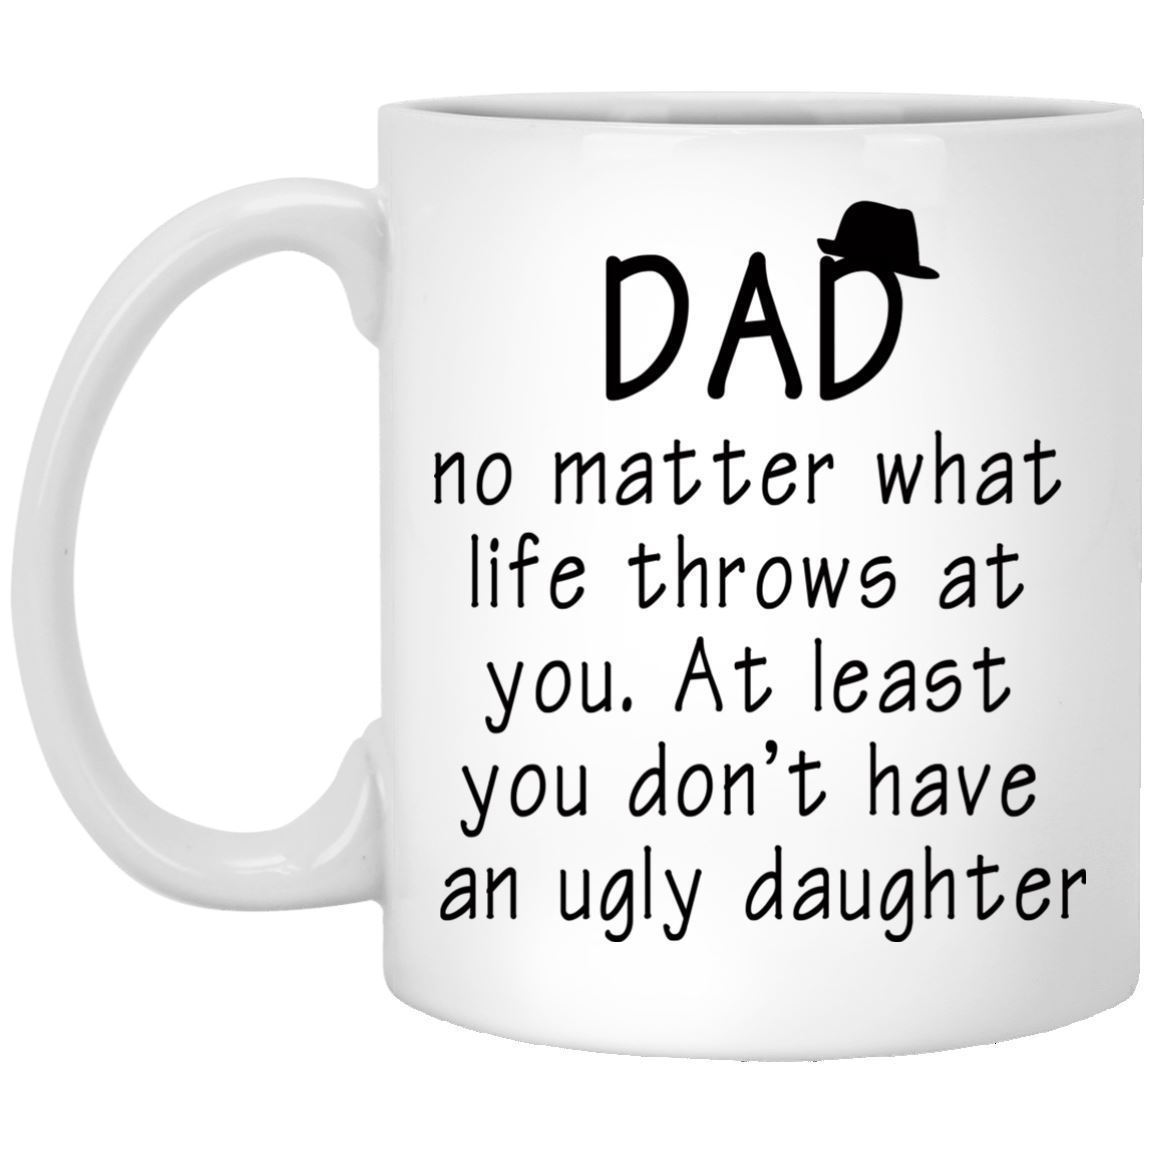 Details About Funny Coffee Mug For Dad From Daughter